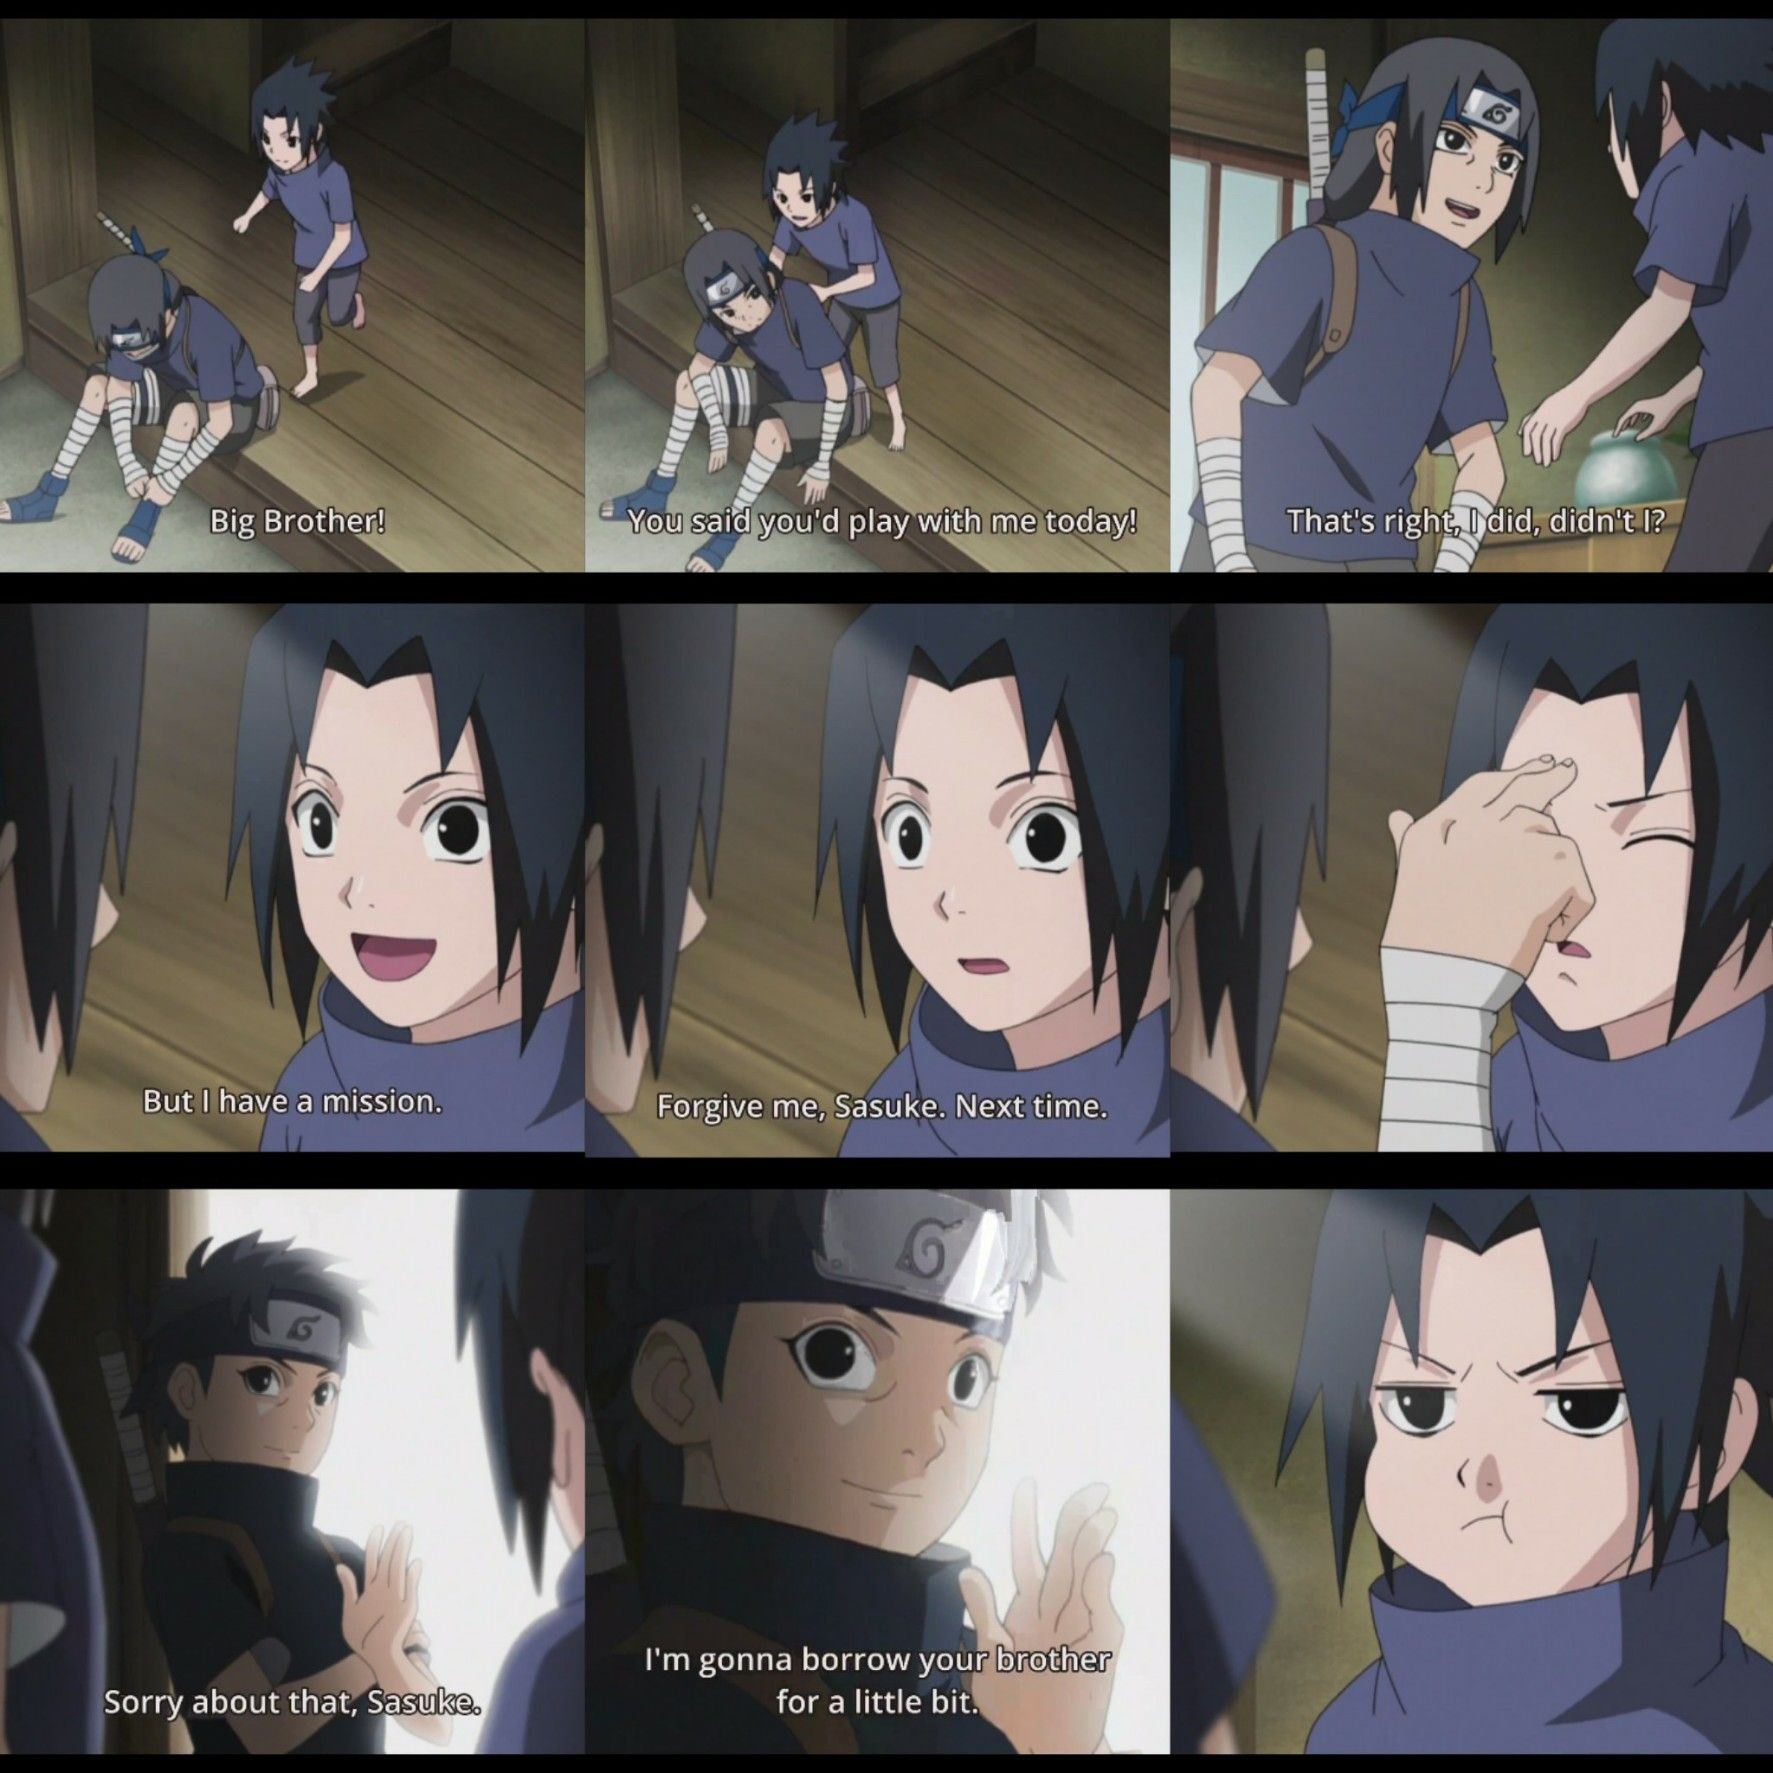 The Only Time I Ever Liked Sasuke Was When He Did His Pouty Face Xd Anime Naruto Anime Sasuke And Itachi